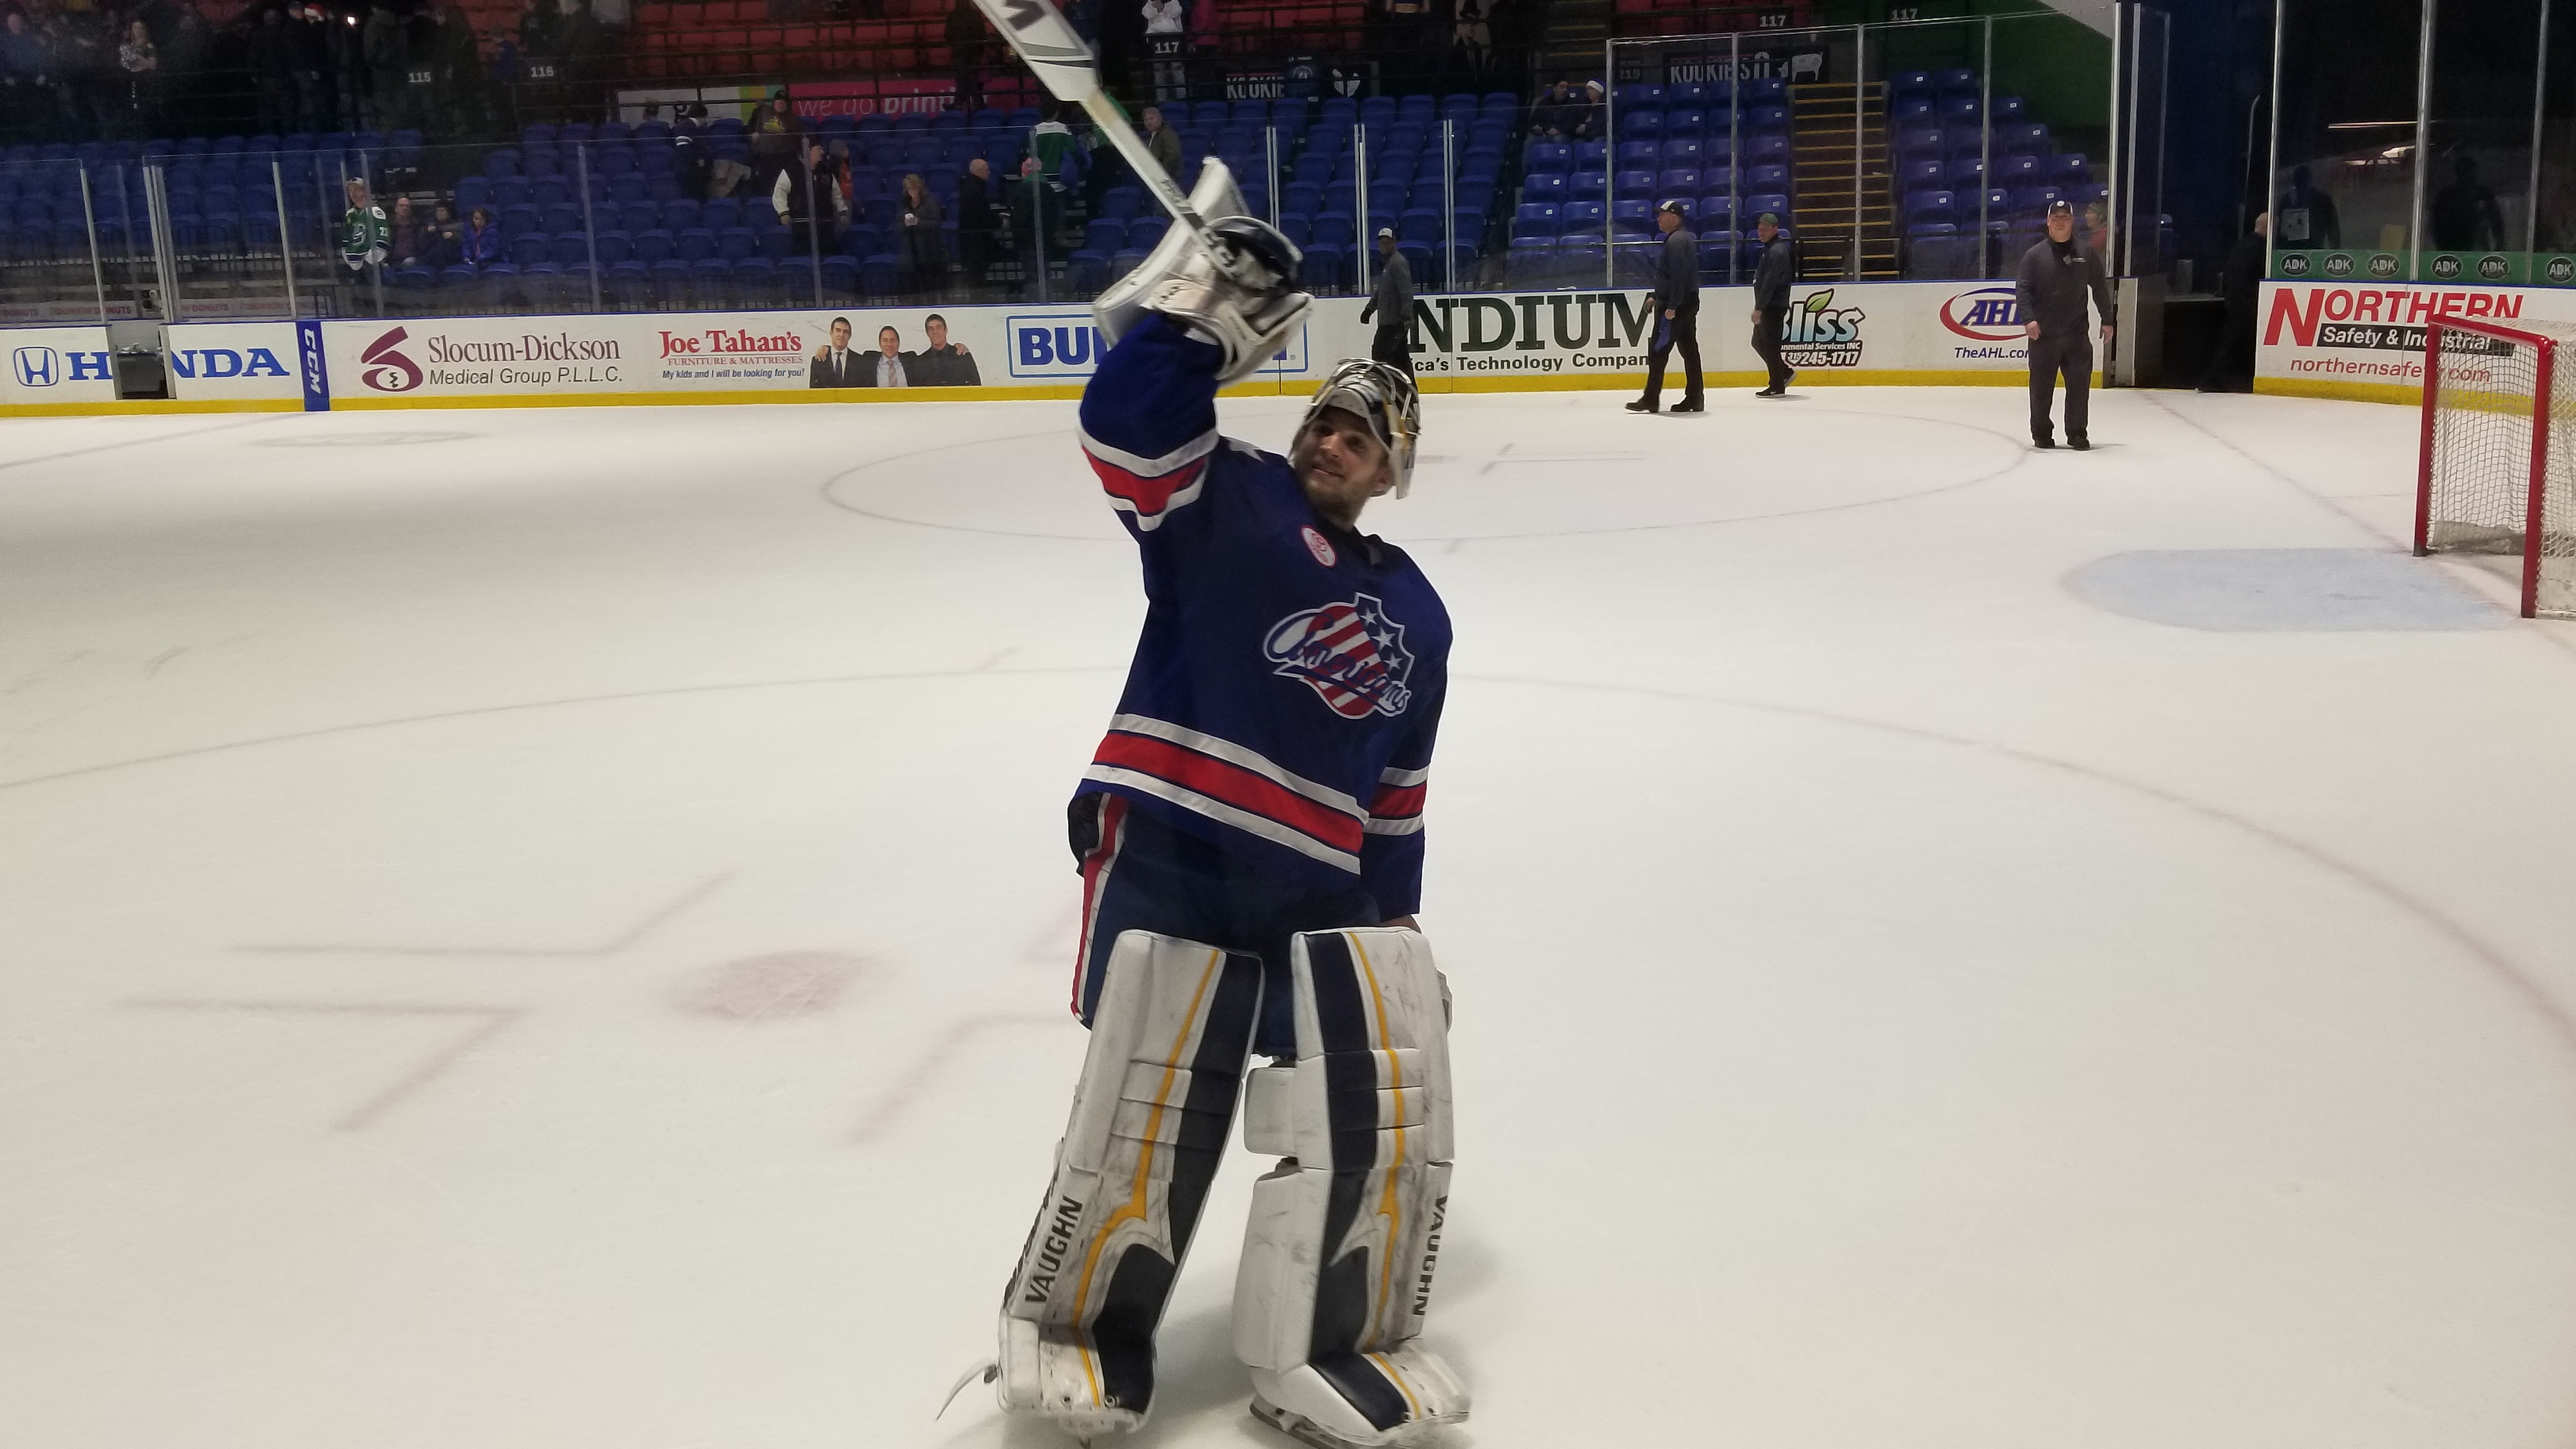 Recapping Another Excellent Weekend for the Amerks